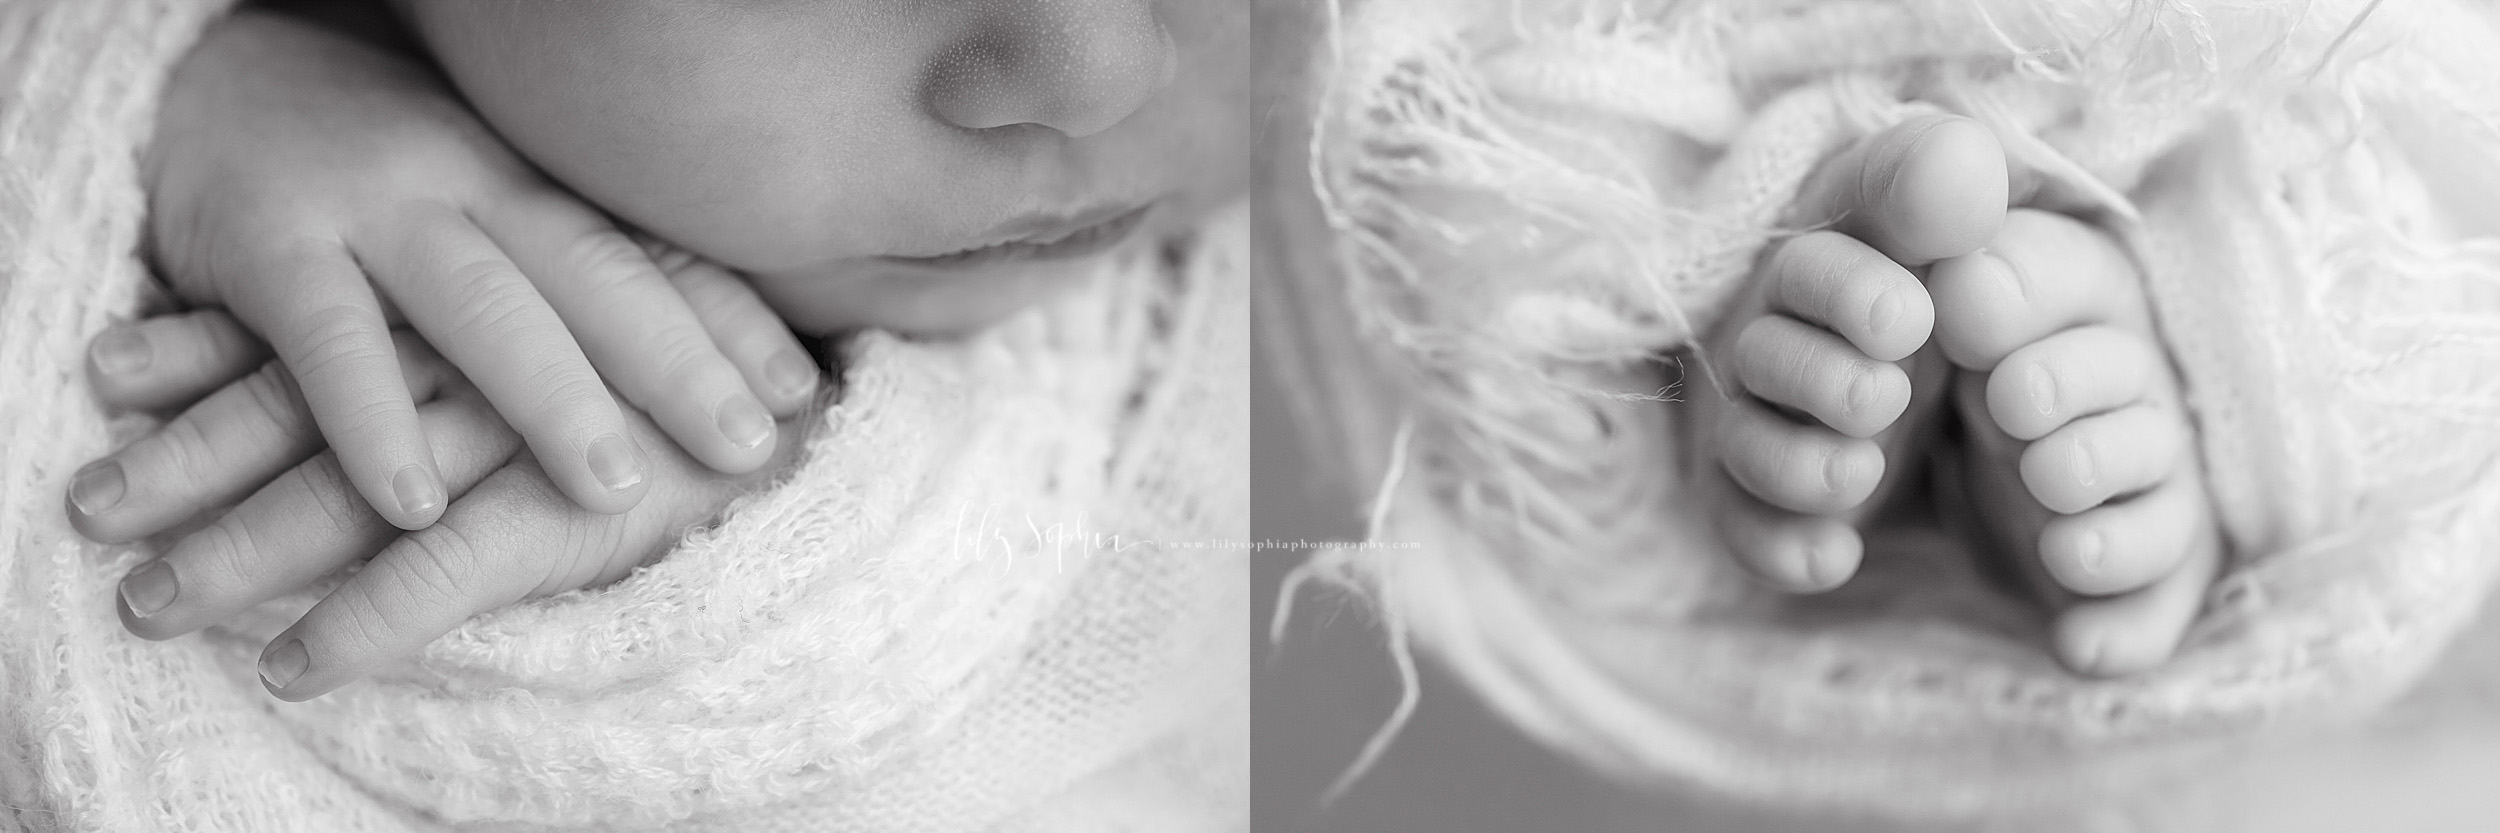 Split image of the delicate features of a newborn baby boy's hands and feet taken by Lily Sophia Photography.